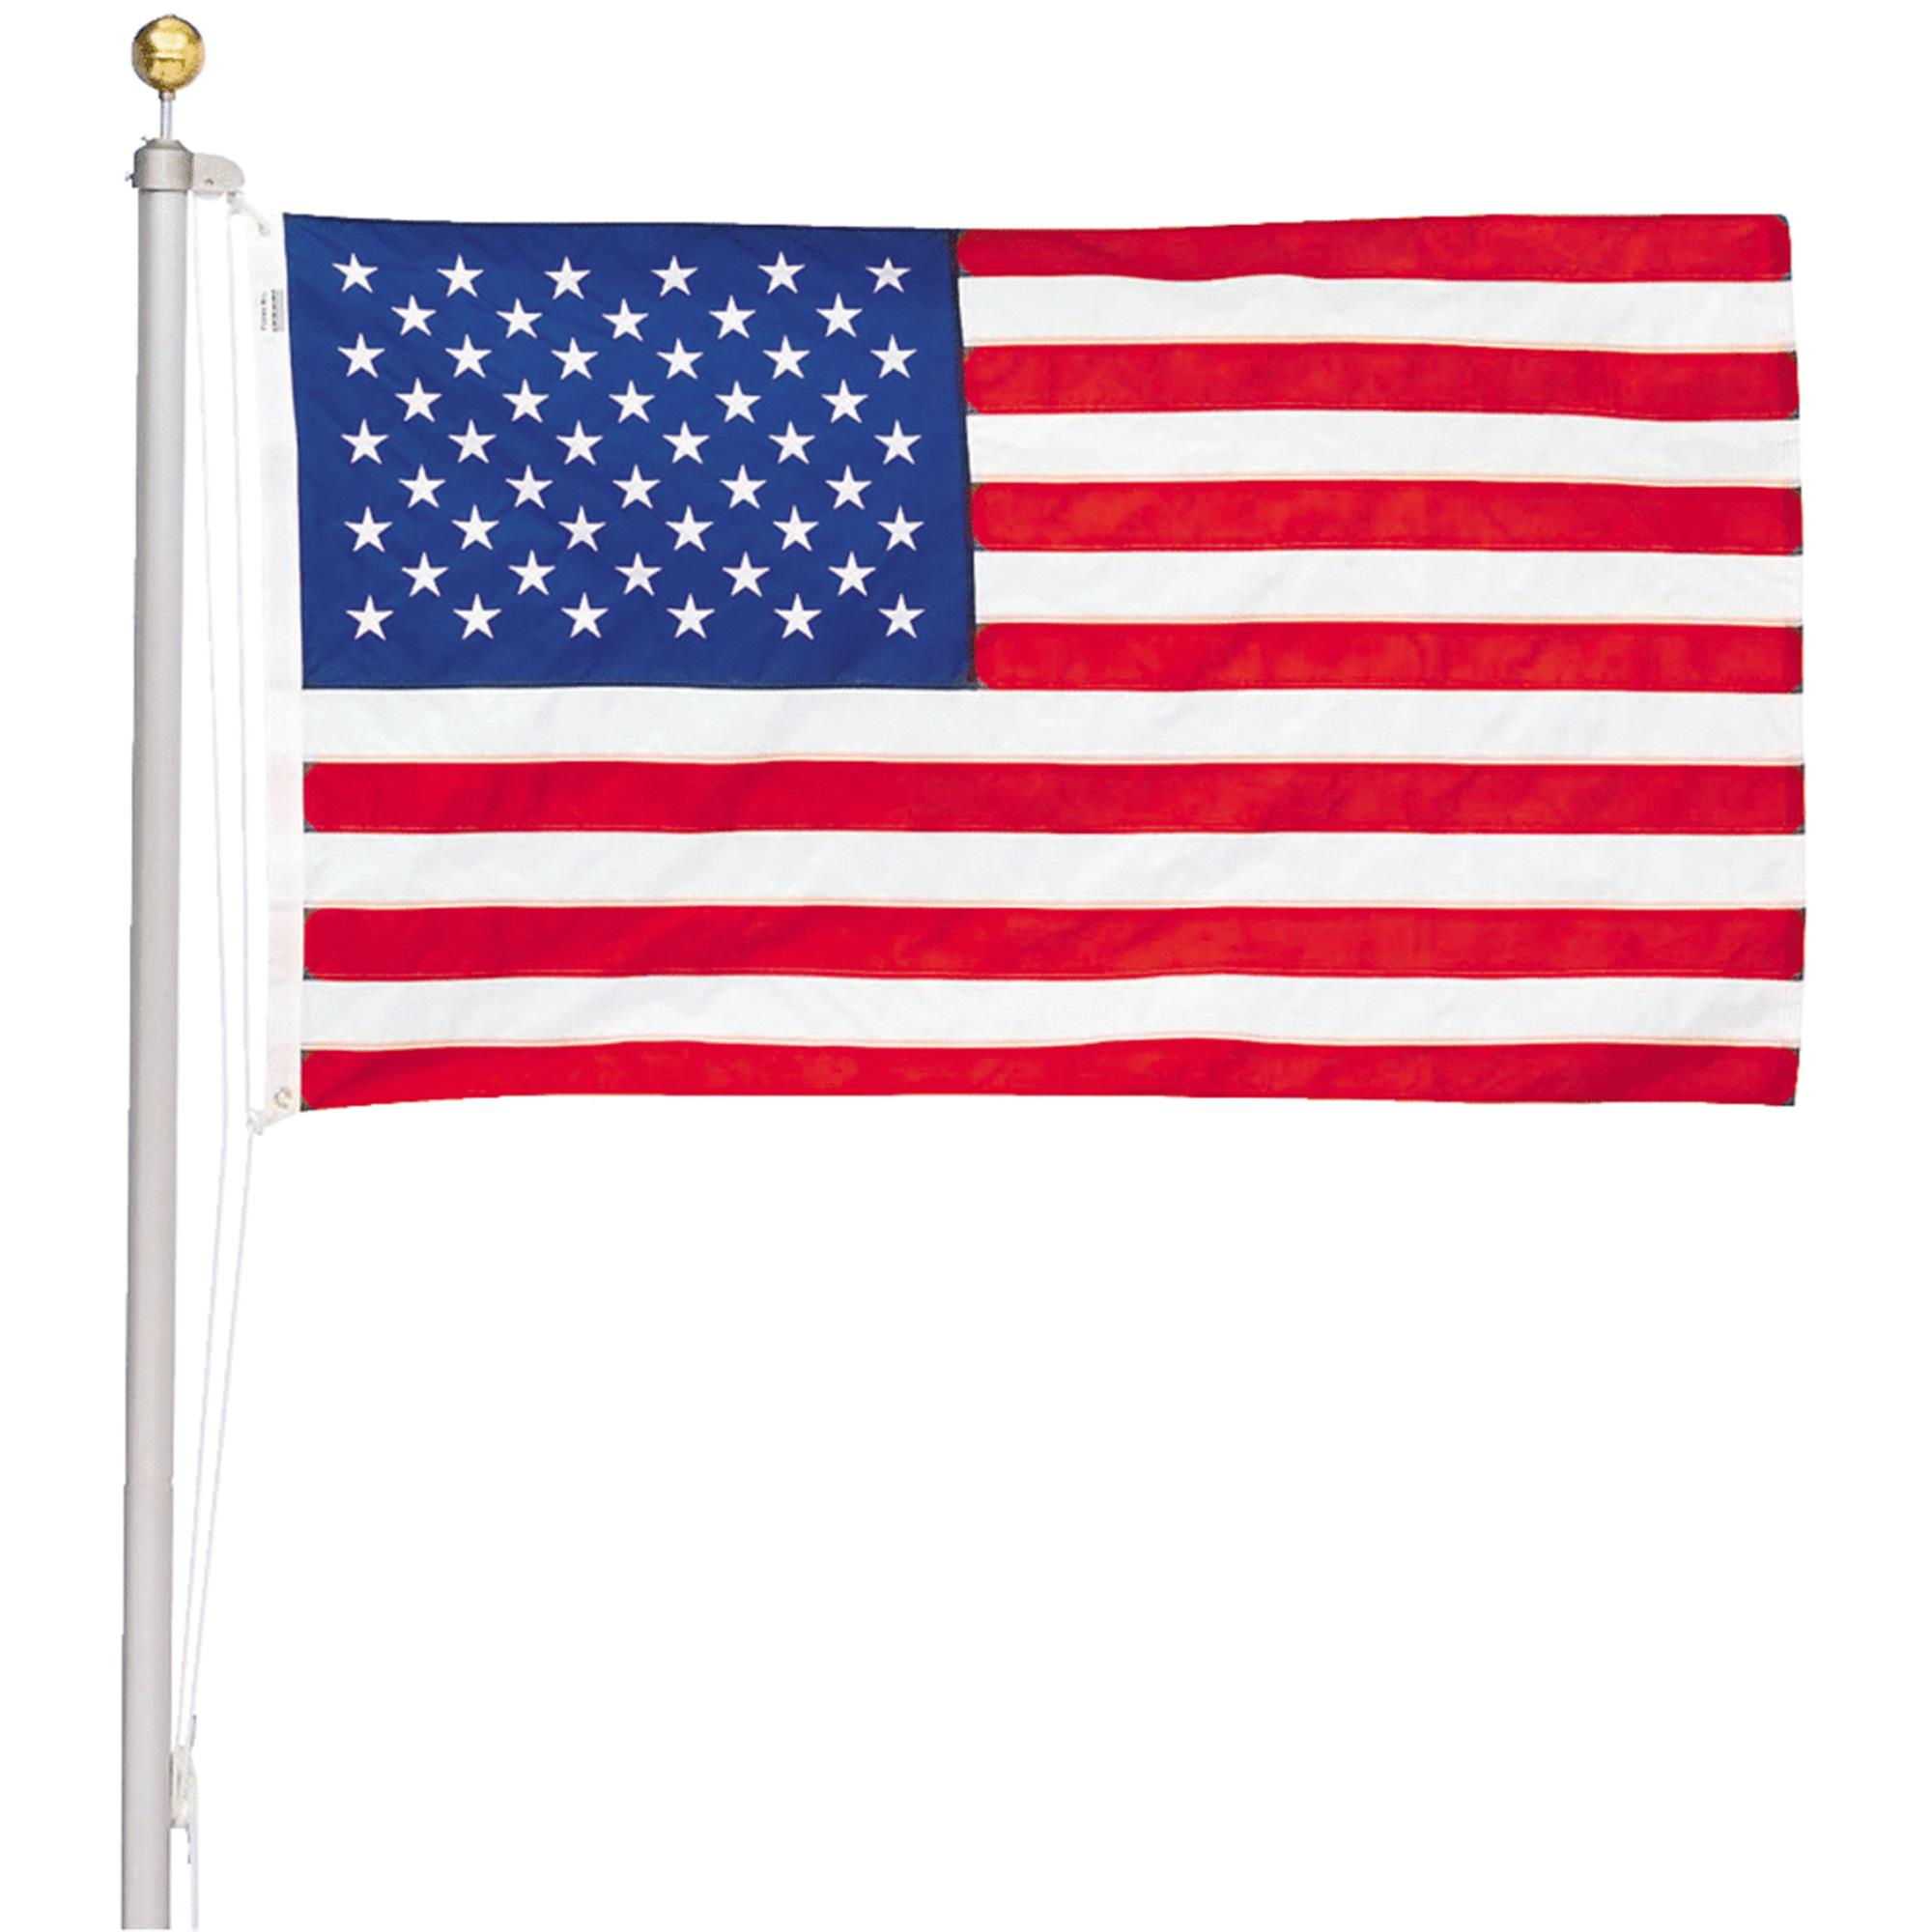 Valley Forge 20 Ft. American Flag Pole Kit by Valley Forge